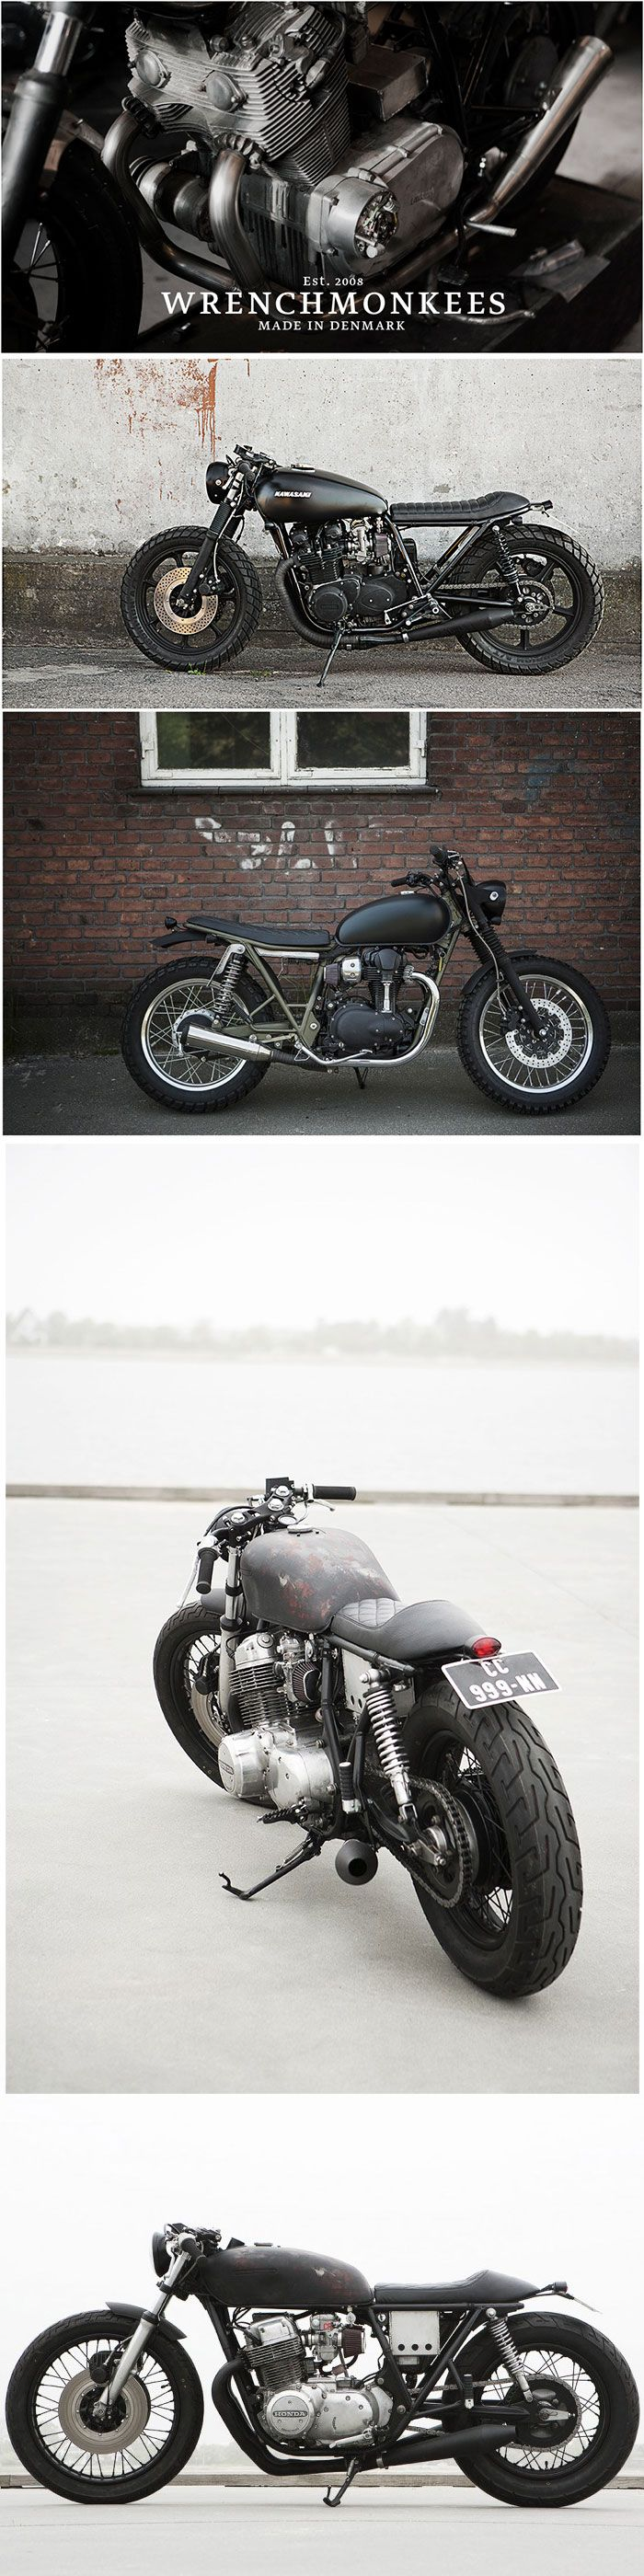 Hailing from Copenhagen, the Wrenchmonkees are considered one of the most influential custom motorcycle builders in the world.